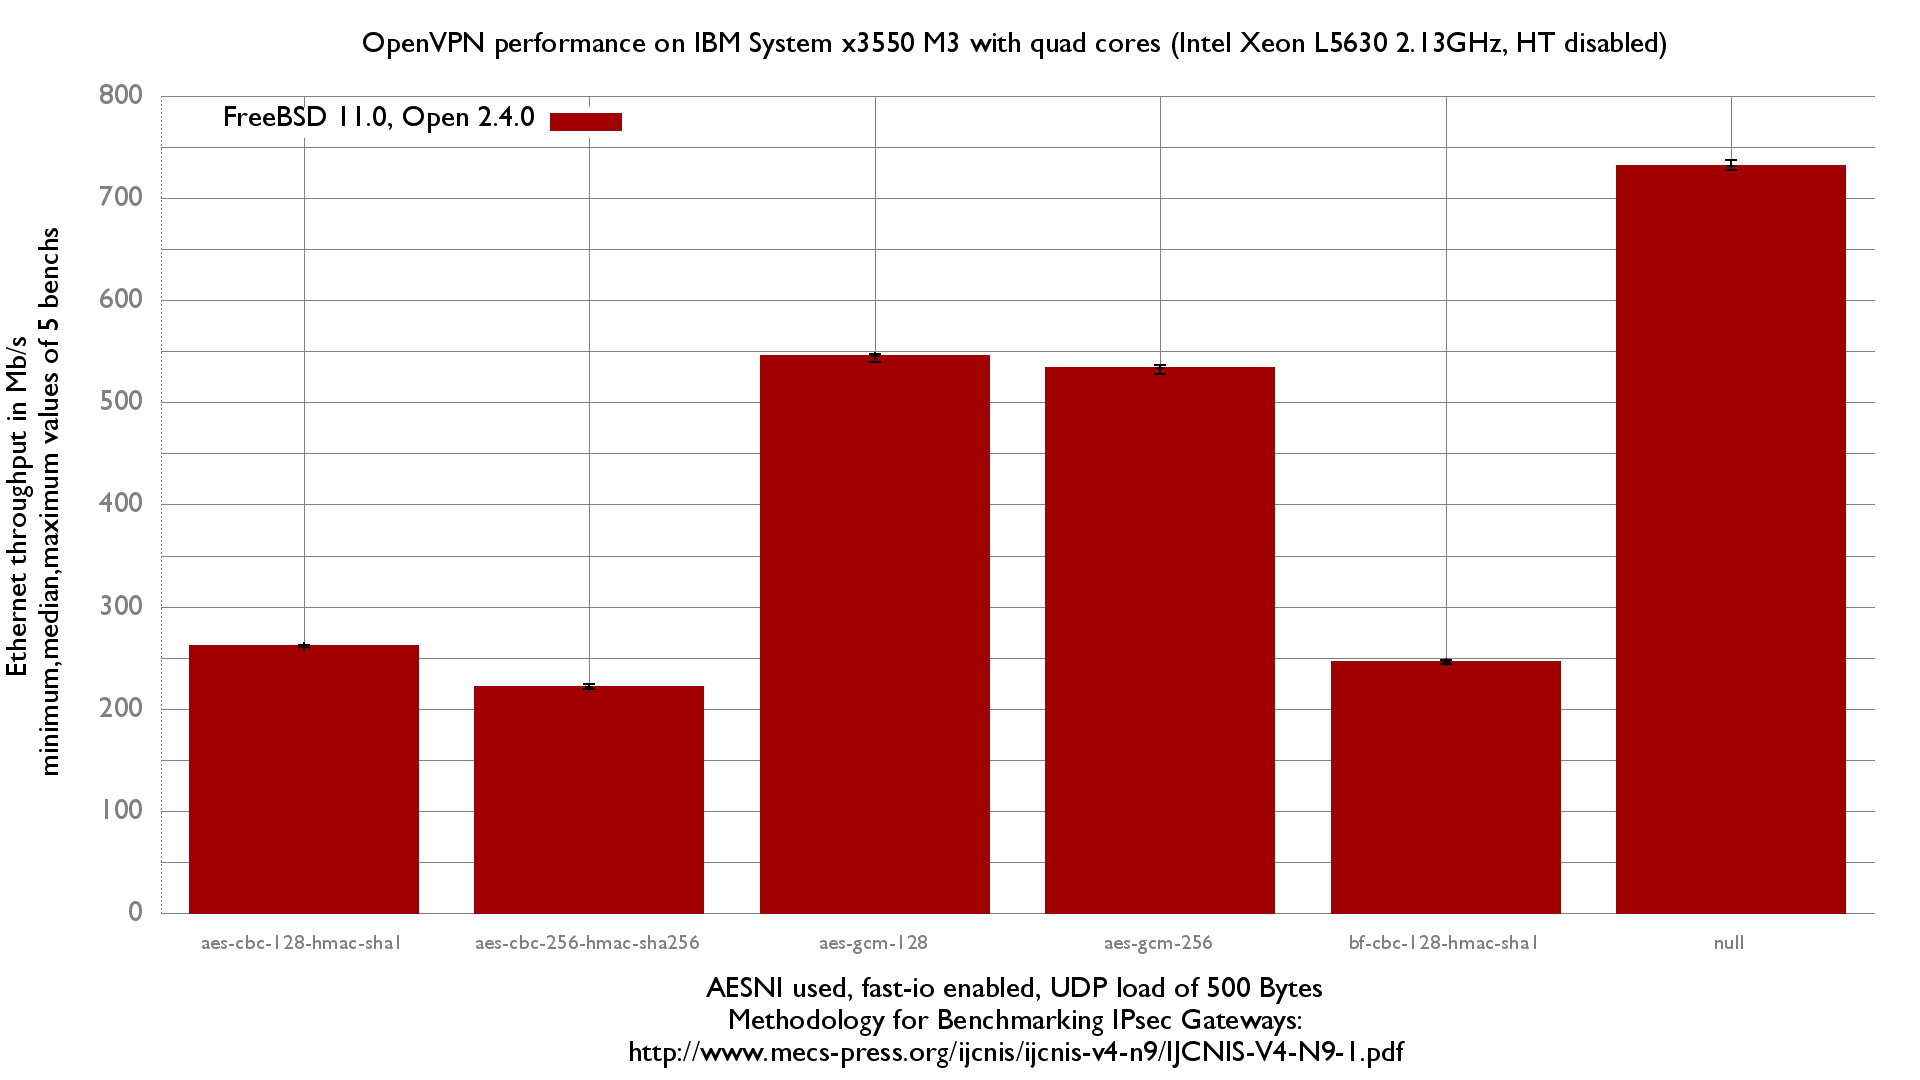 Impact of OpenVPN encryption algorithms on 4 cores Xeon 2.13GHz with Intel 82580 NIC